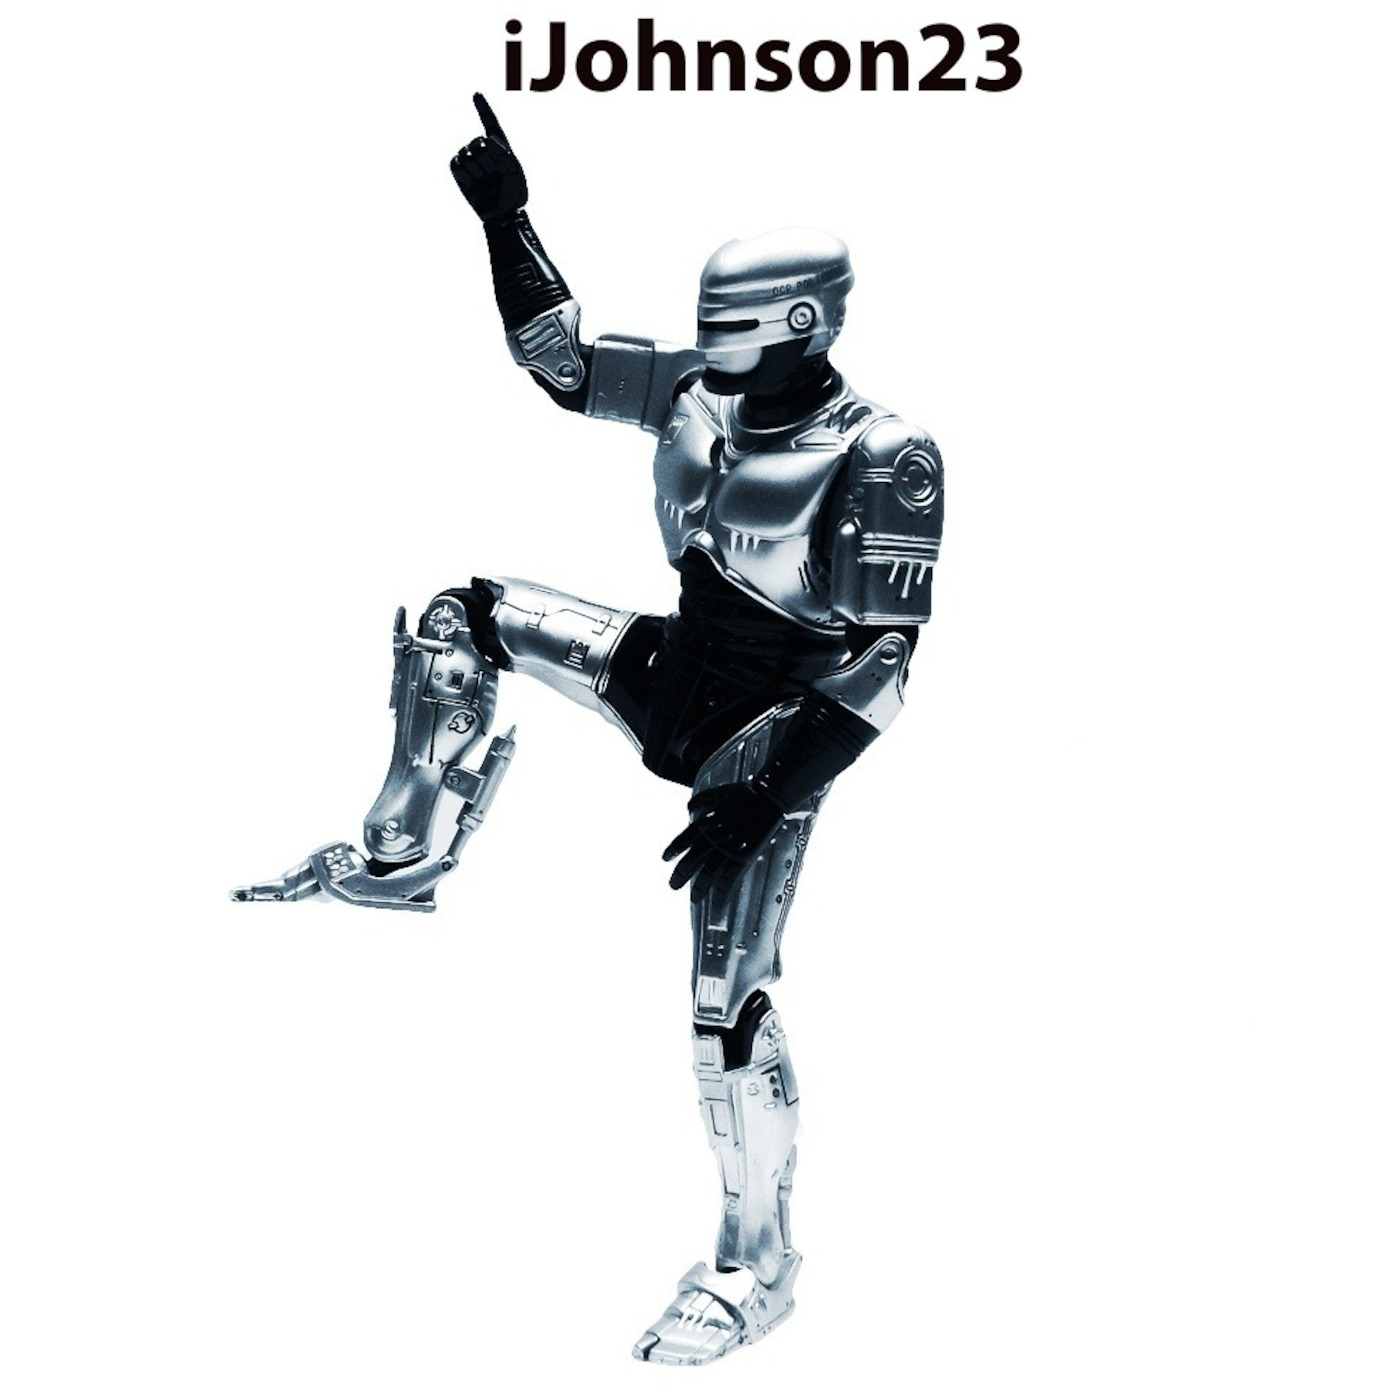 ijohnson23 Podcast